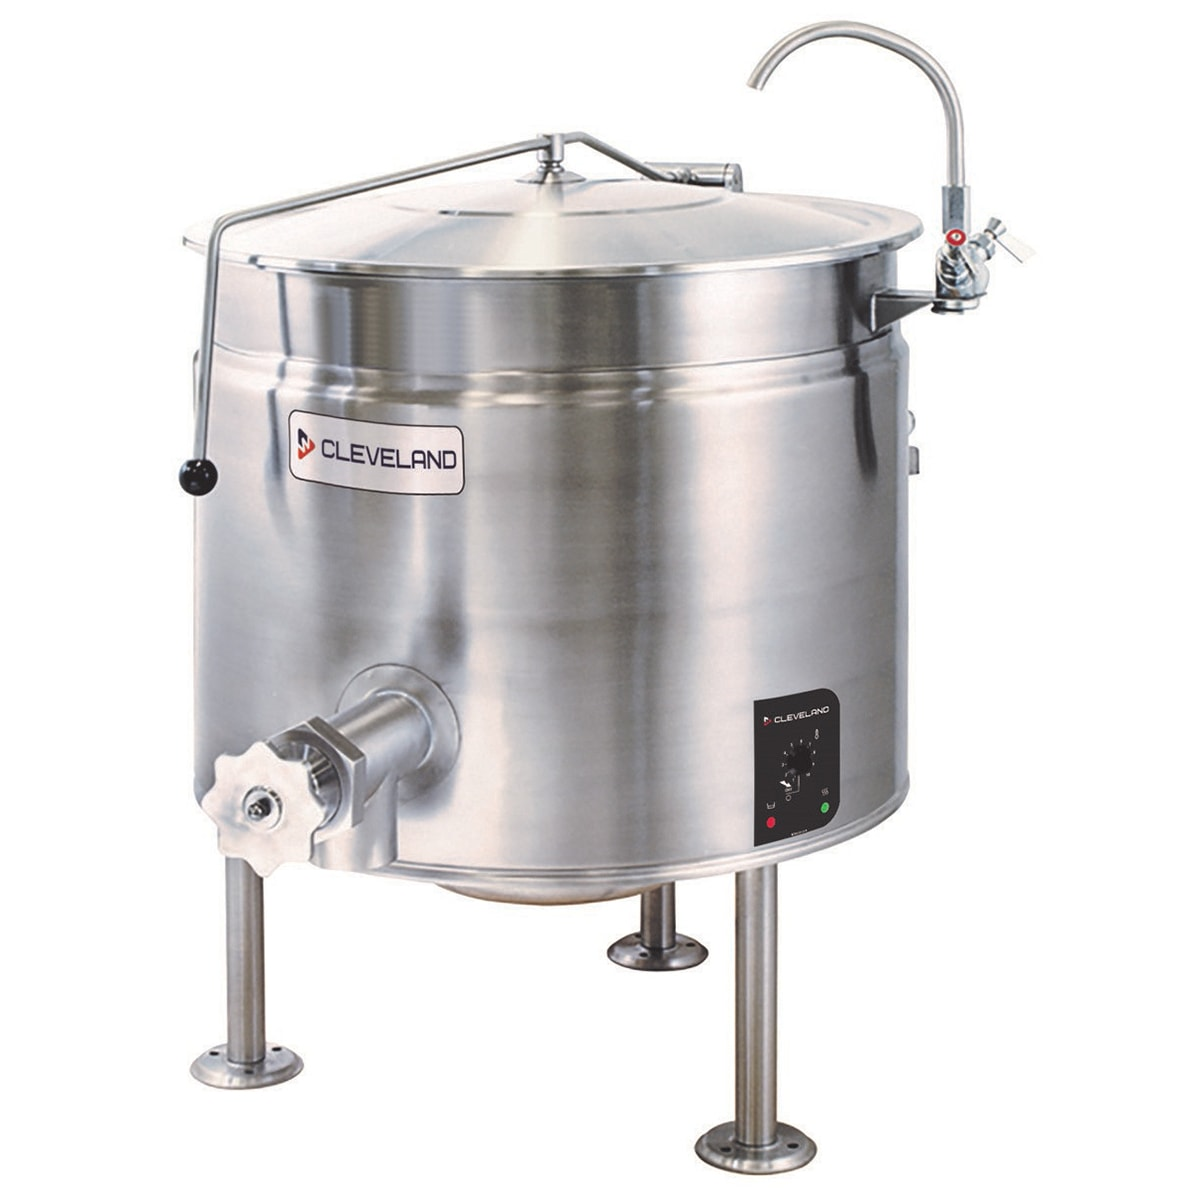 Cleveland KEL-40-SH 40 gal Full Steam Jacket Kettle w/ Open 3 Leg Base, Solid-State, 208v/3ph